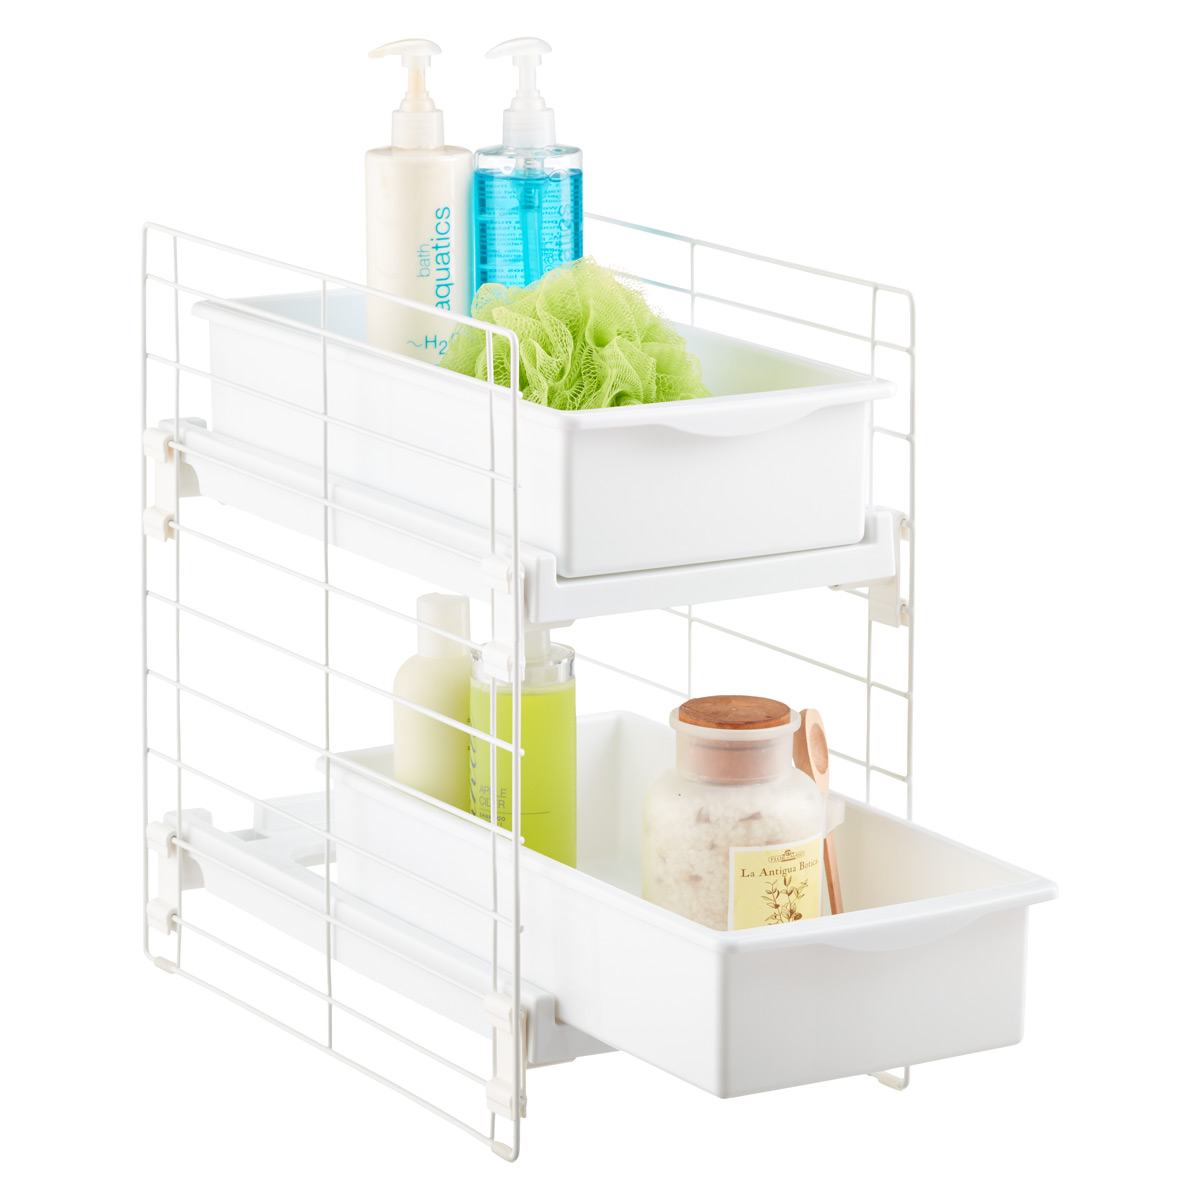 Bathroom cabinet organizers - Sliding 2 Drawer Organizer